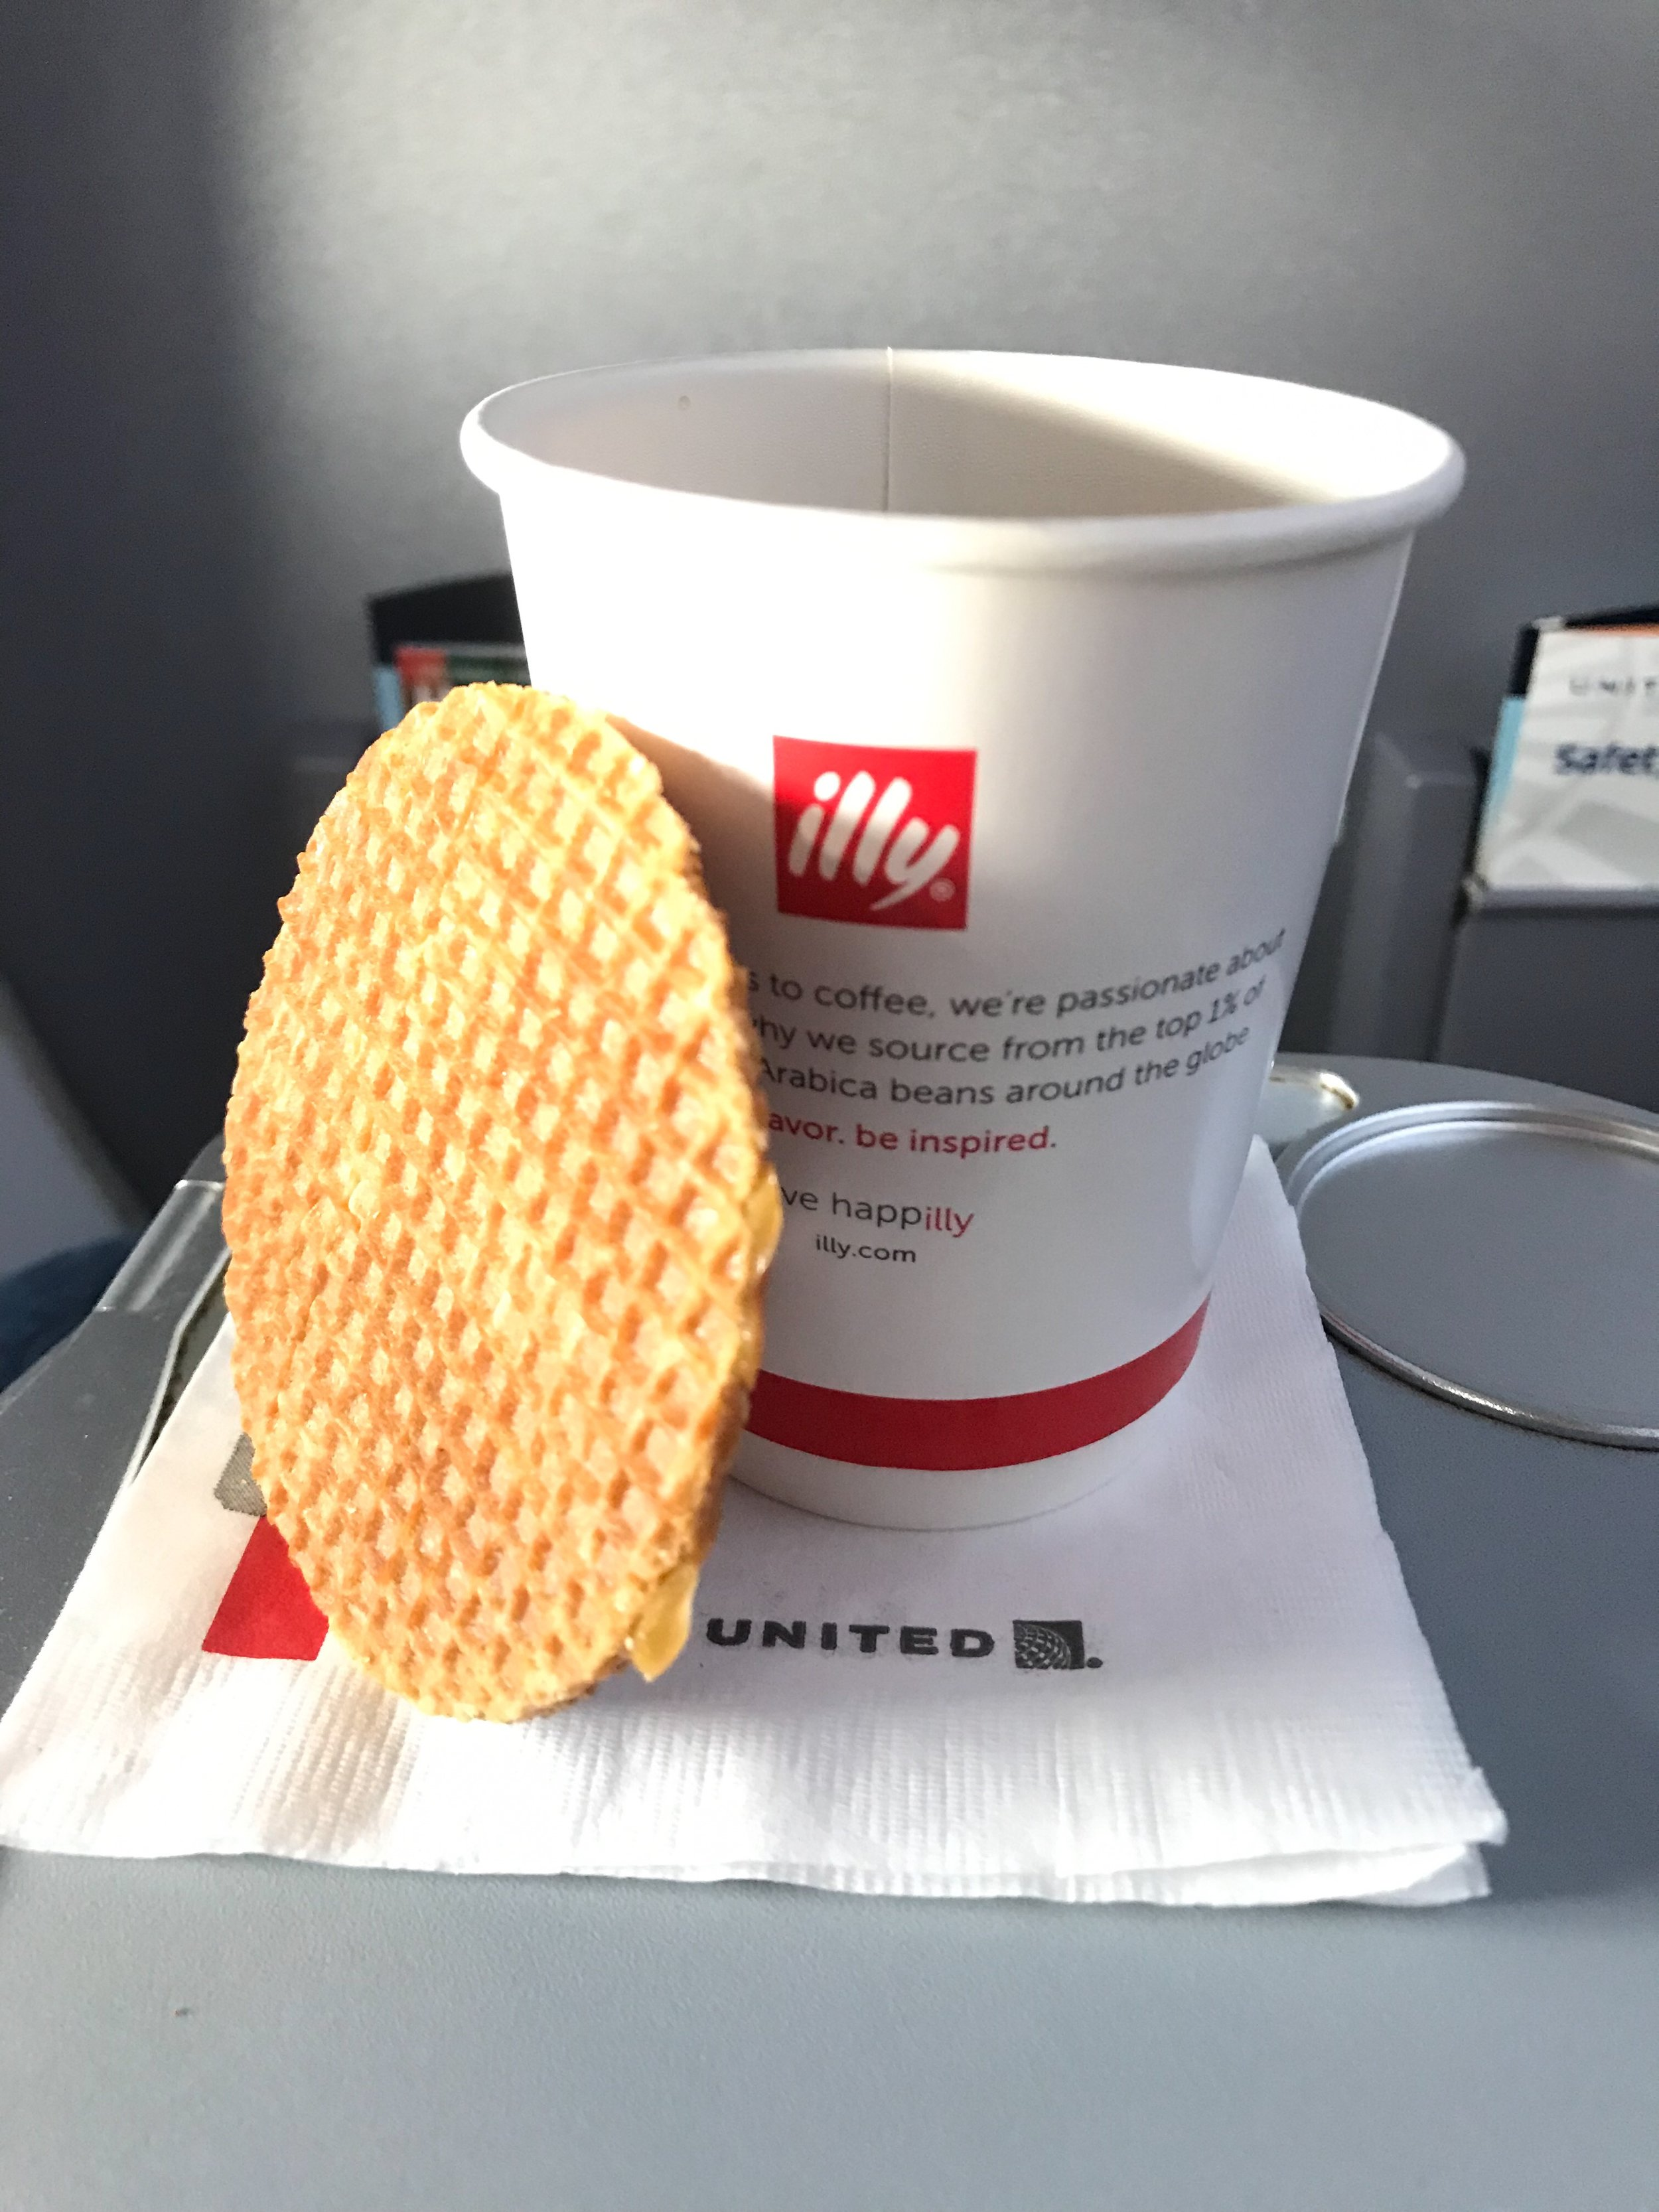 United serves illy coffee in all classes of service.